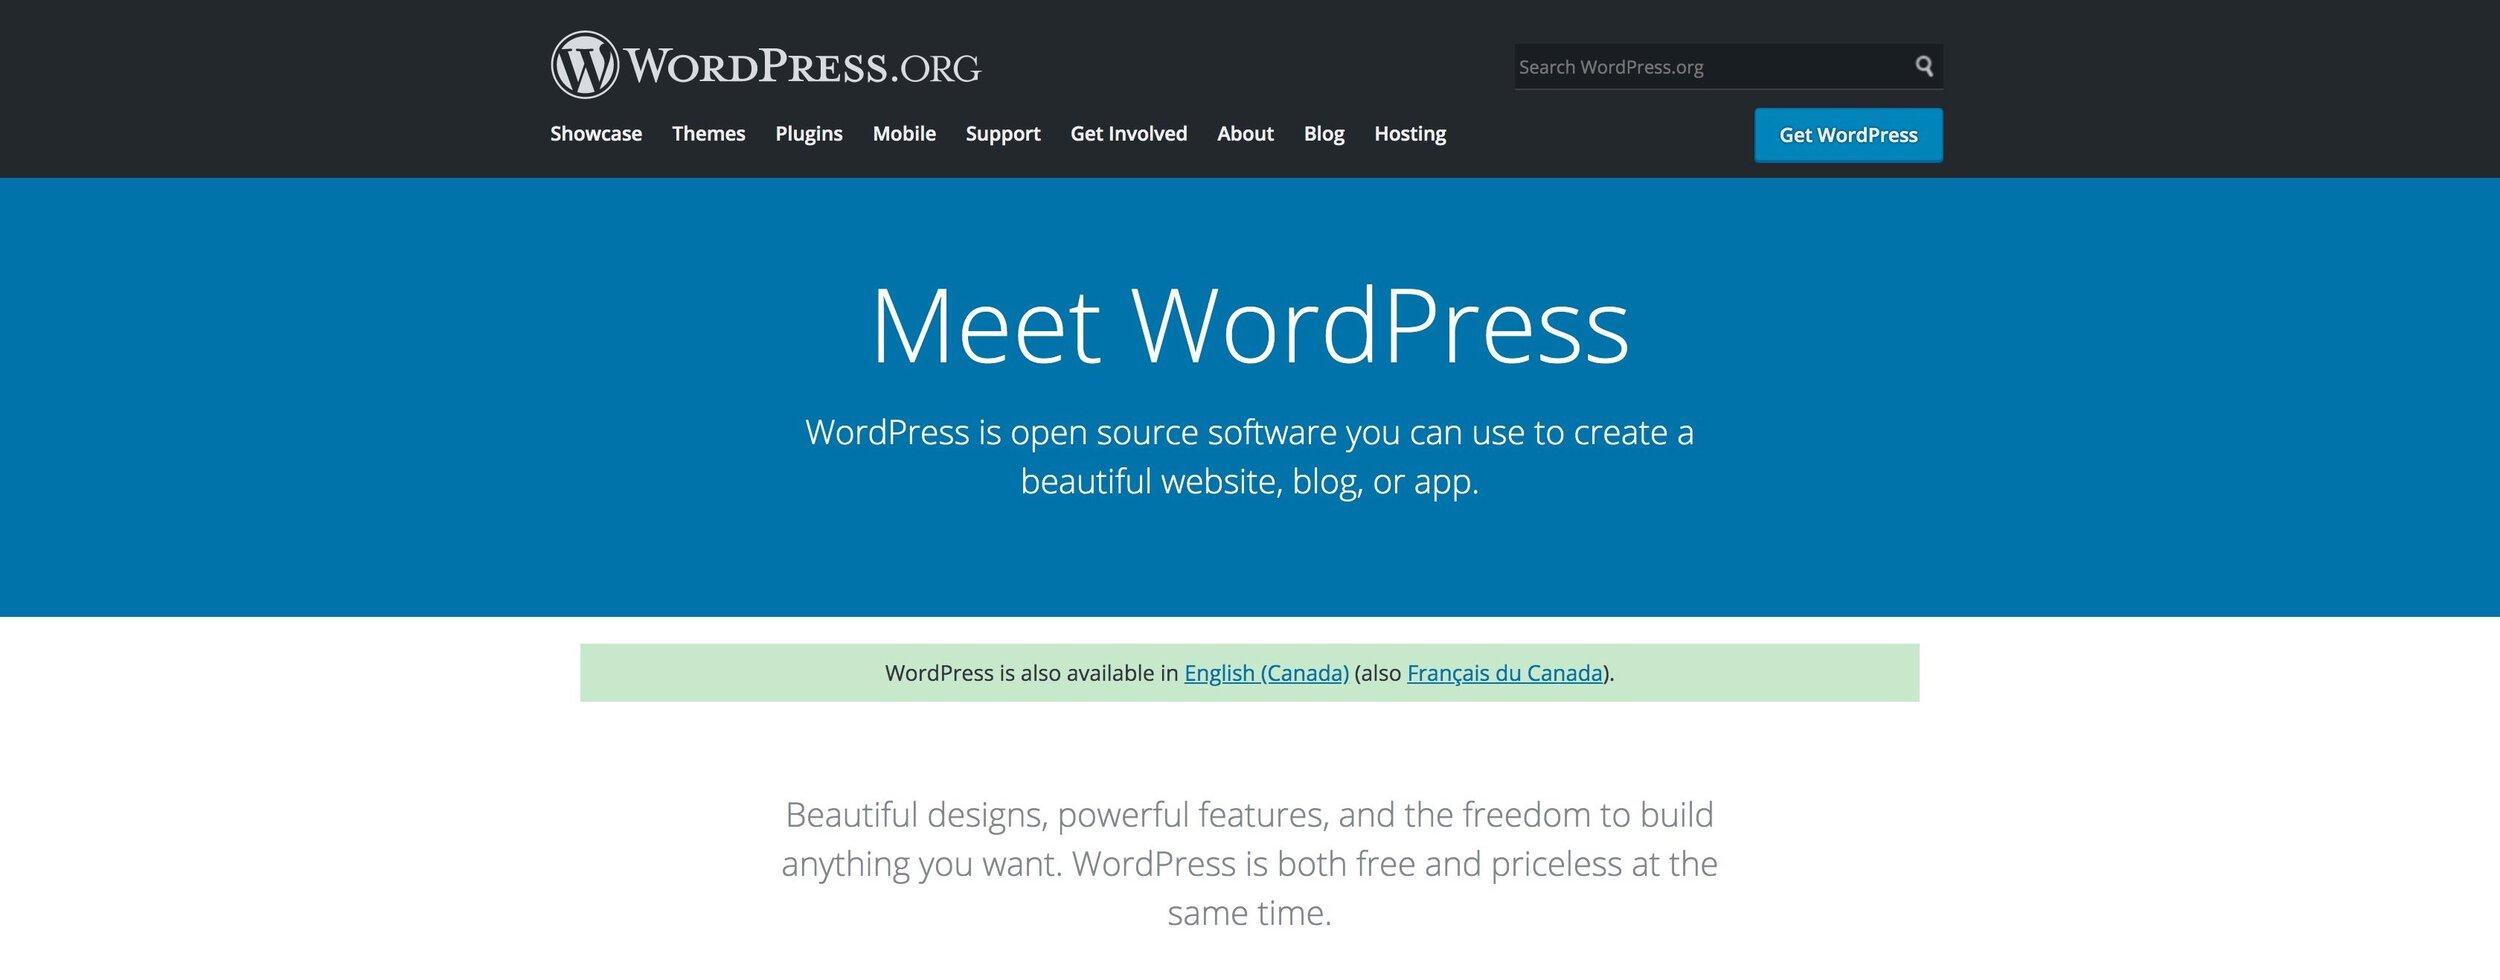 wordpress.org welcome page